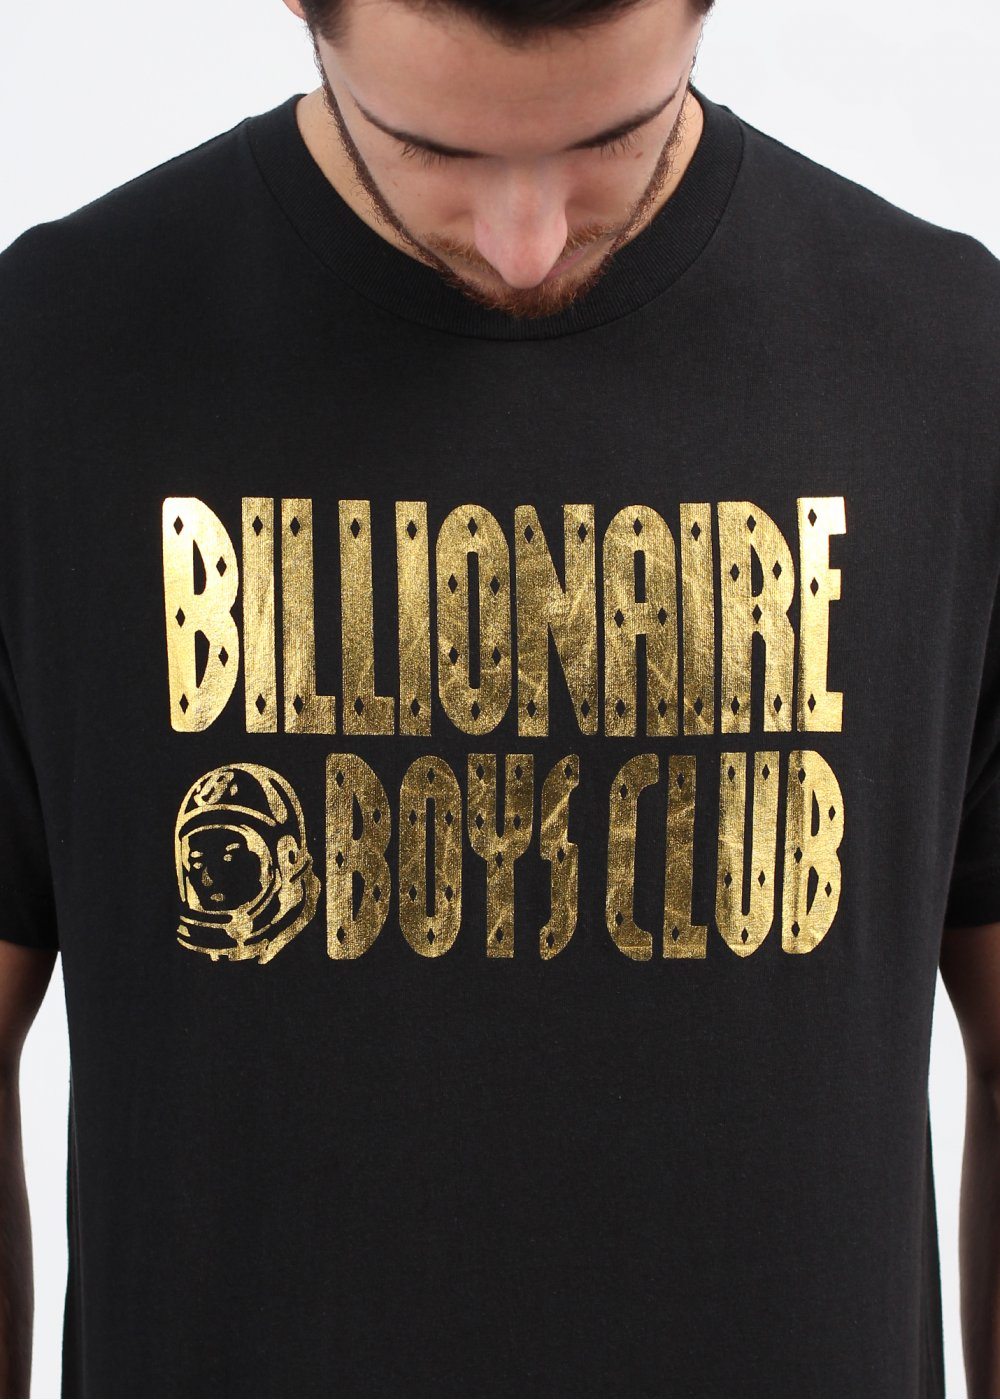 black and gold t shirt,Quality T Shirt Clearance!